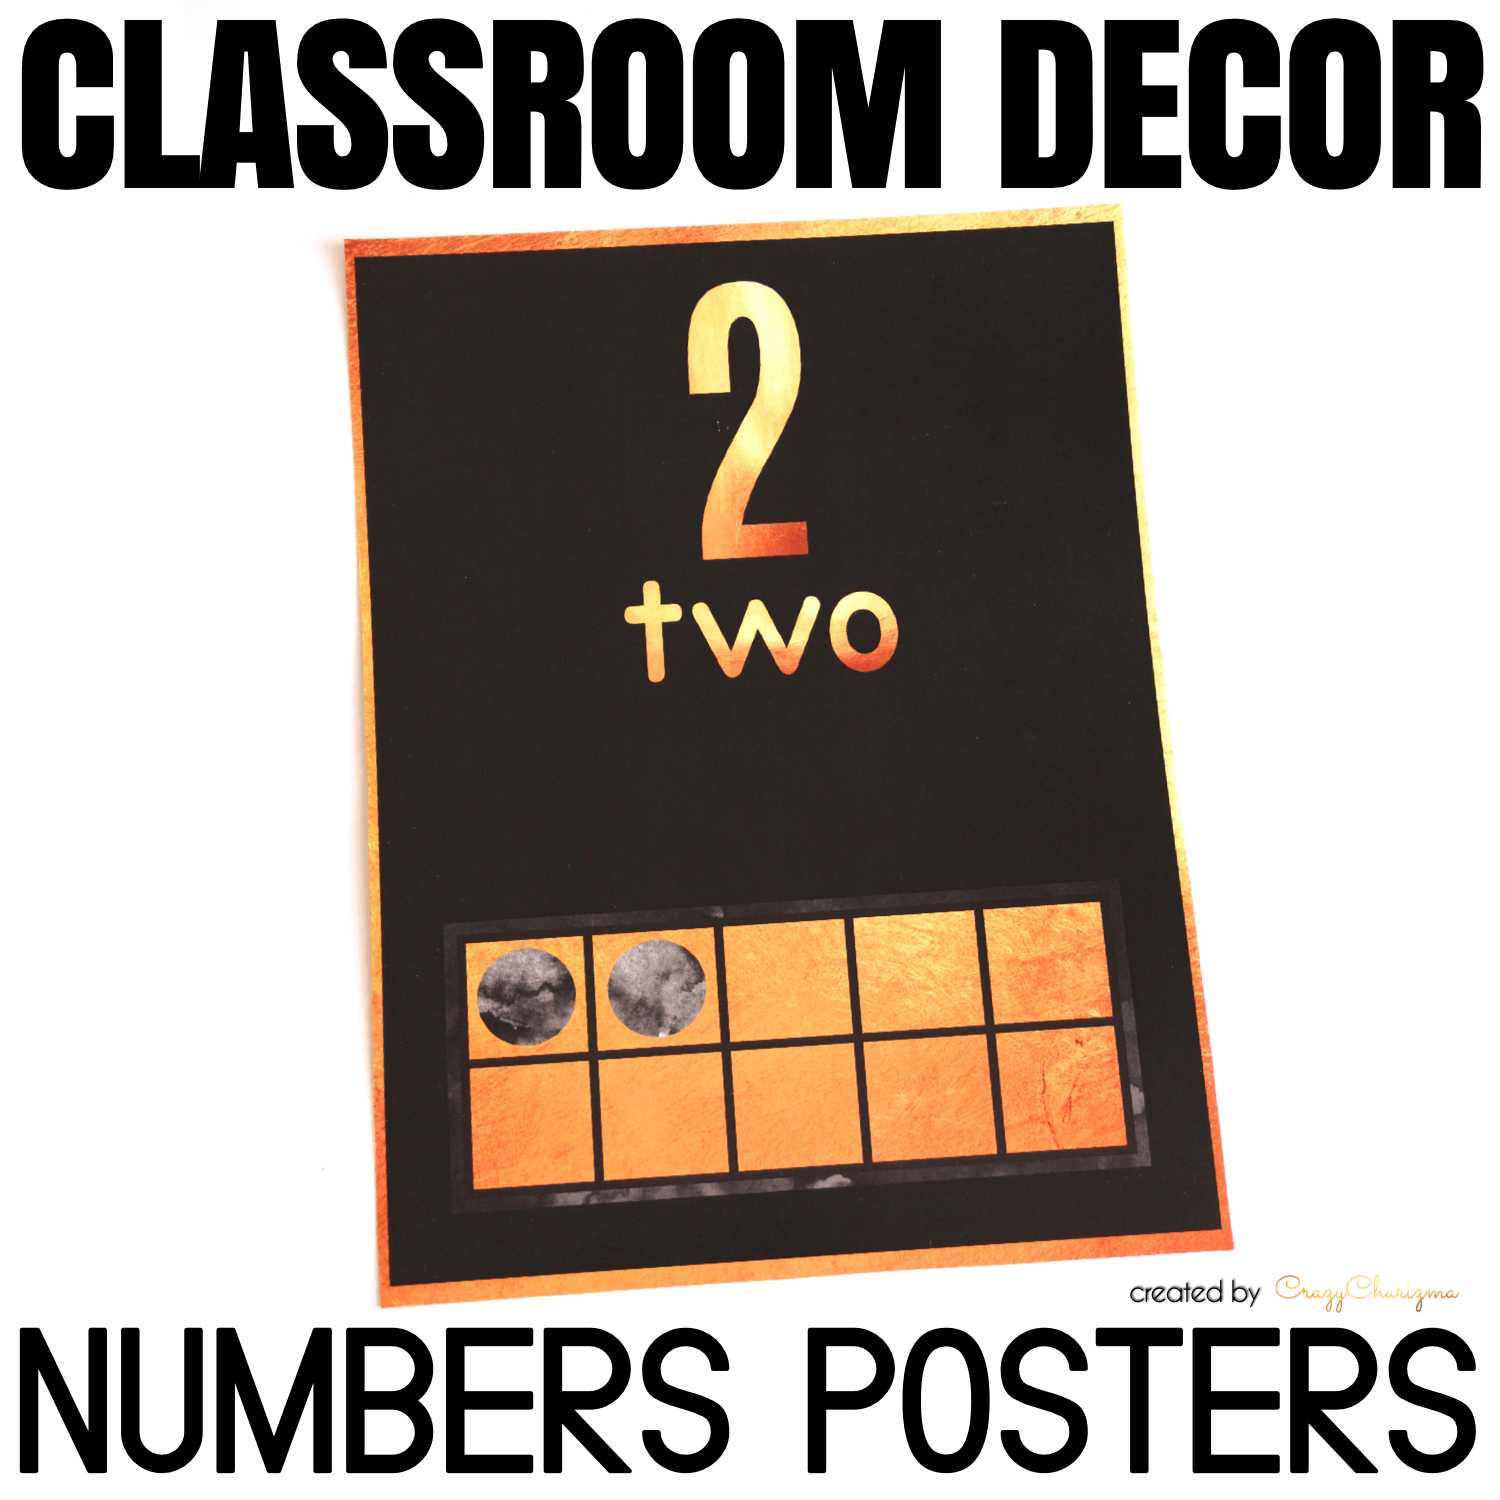 Decorate your classroom this year with this stylish BLACK and GOLD decor set. Find inside vibrant and bright Number Posters.